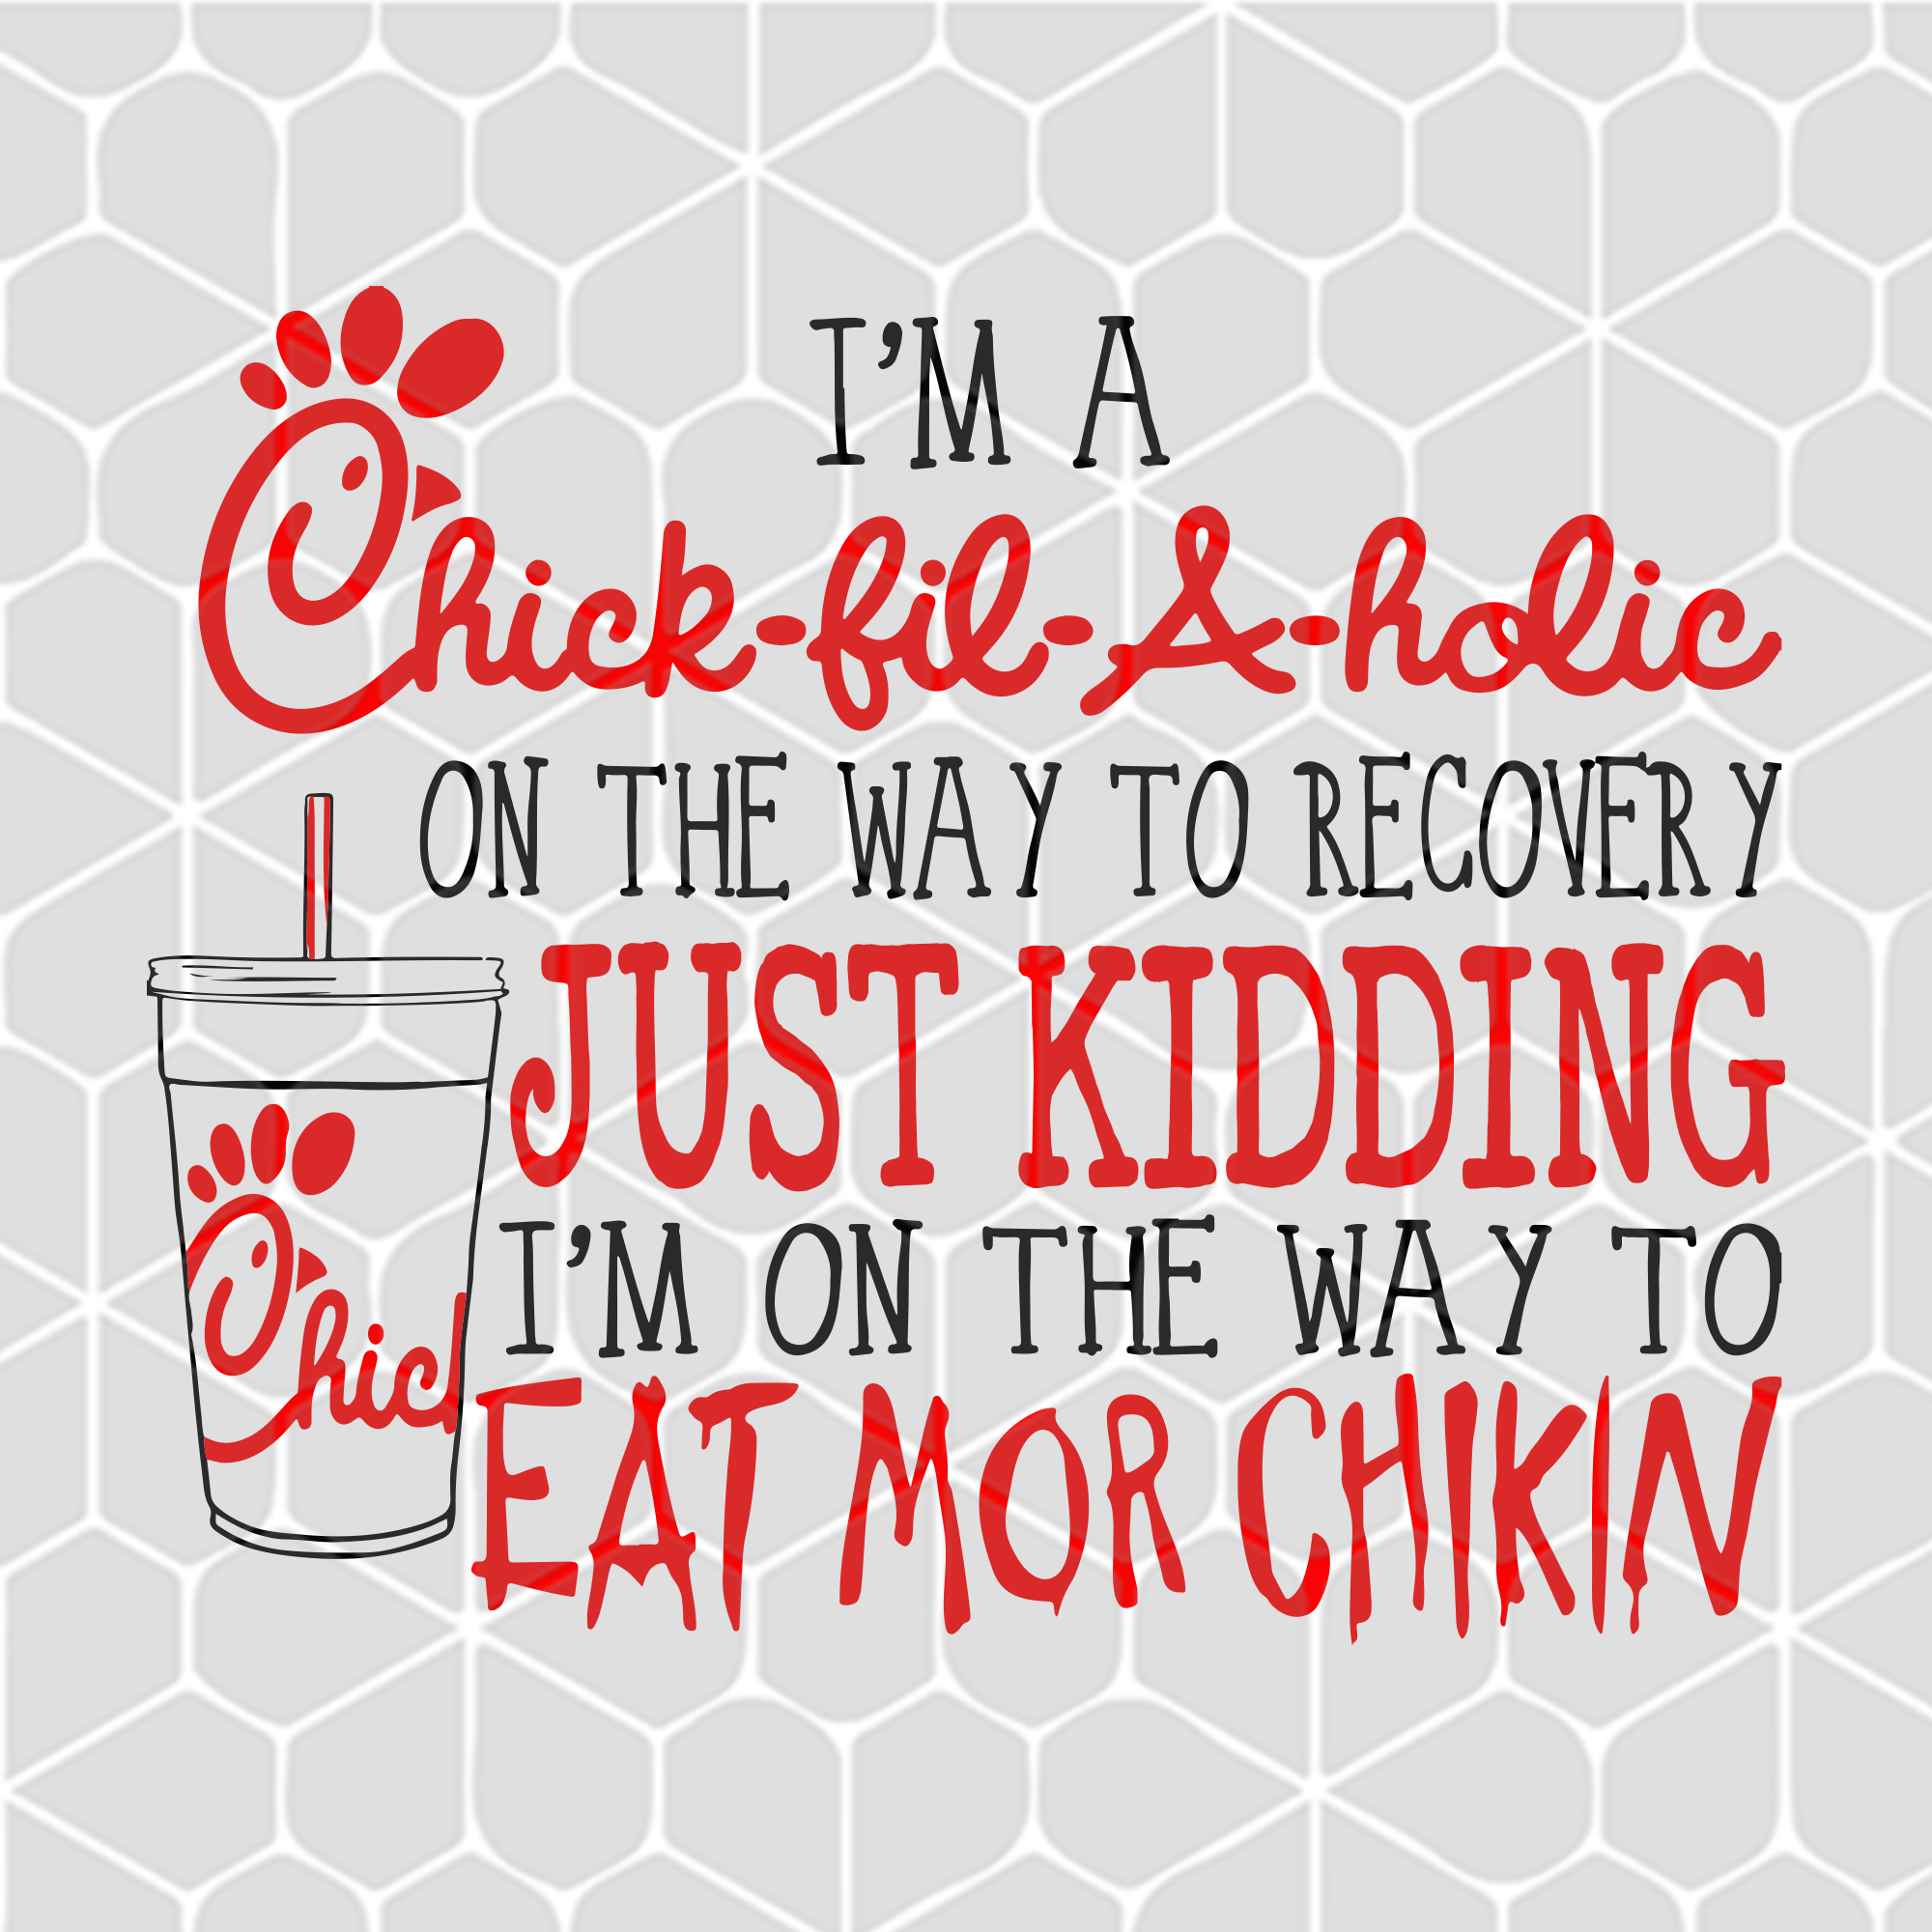 I'm a chick fil a holic on the way to recovery just kidding, chick fill svg, chick fil gift, chick fil shirt, scrapbooking svg, chick holic,trending svg, Files For Silhouette, Files For Cricut, SVG, DXF, EPS, PNG, Instant Download